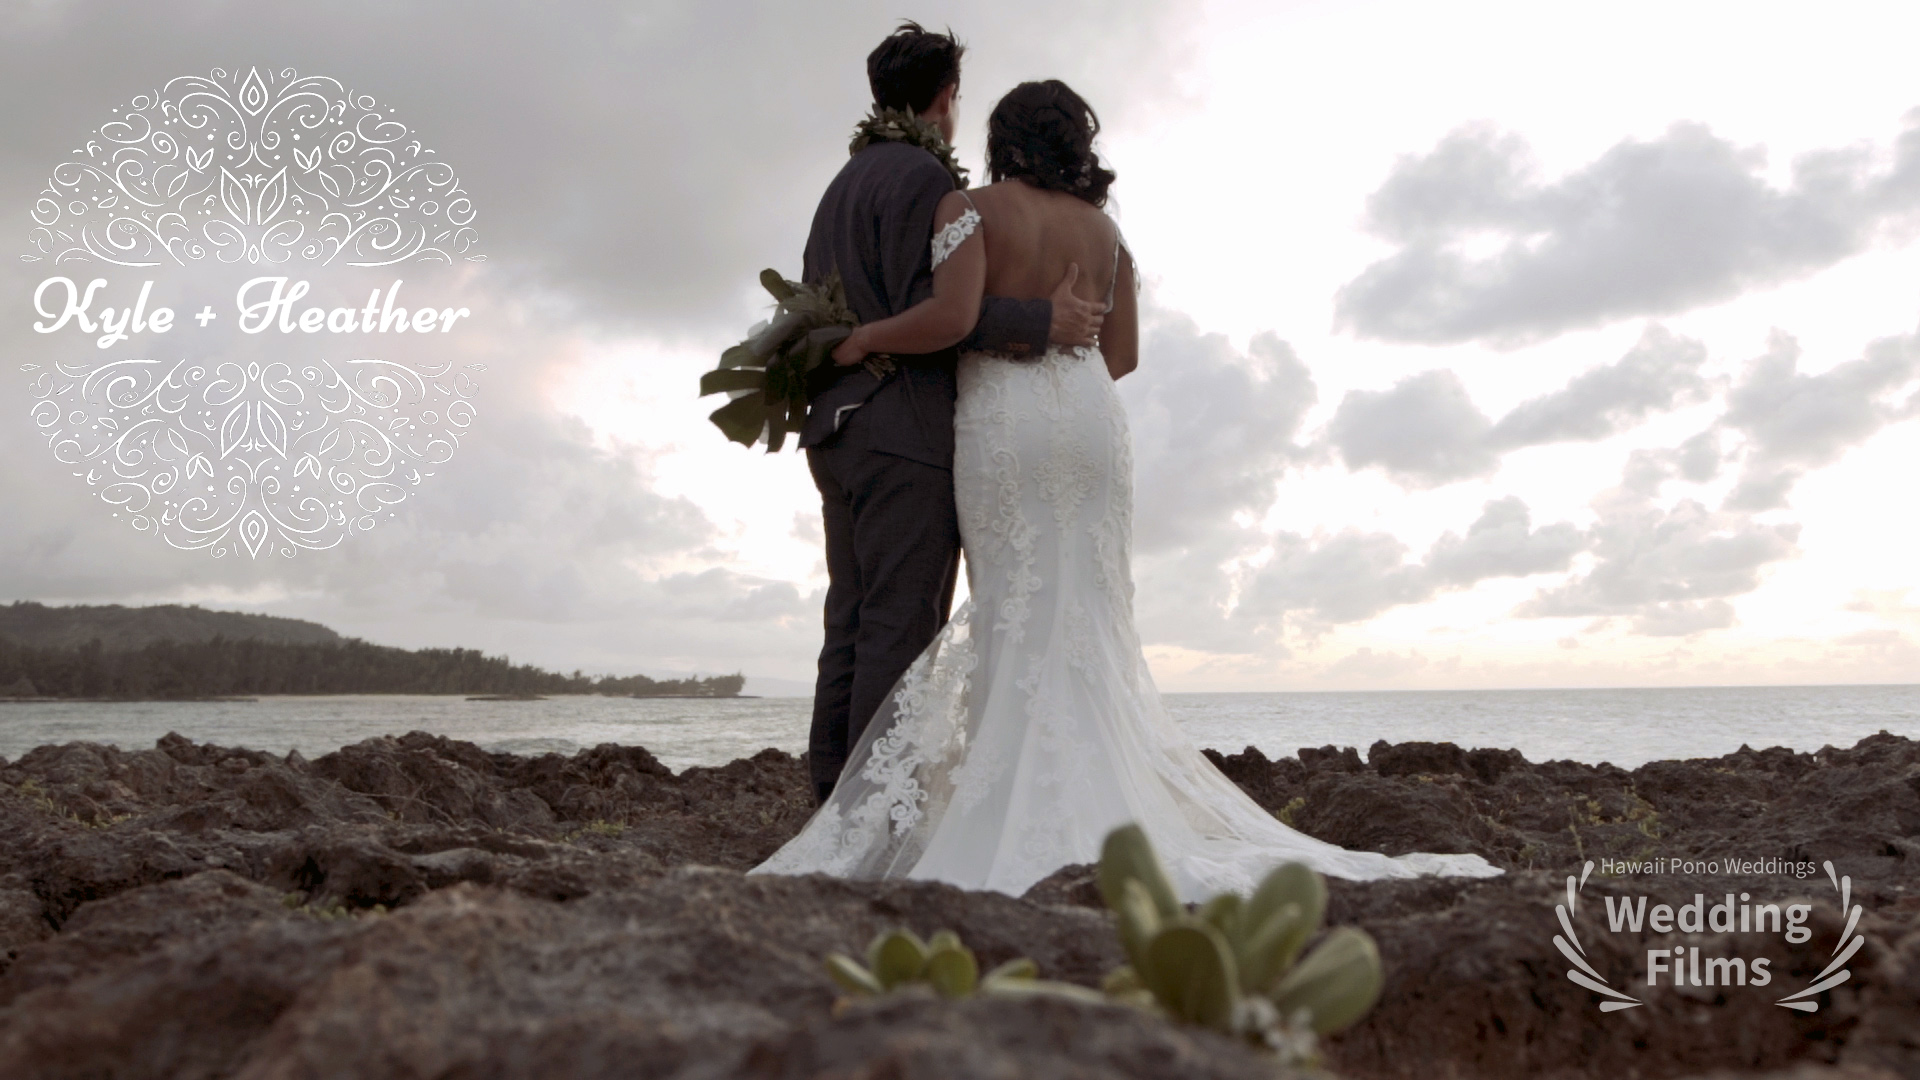 Heather + Kyle | Hauula, Hawaii | Turtle Bay Resort